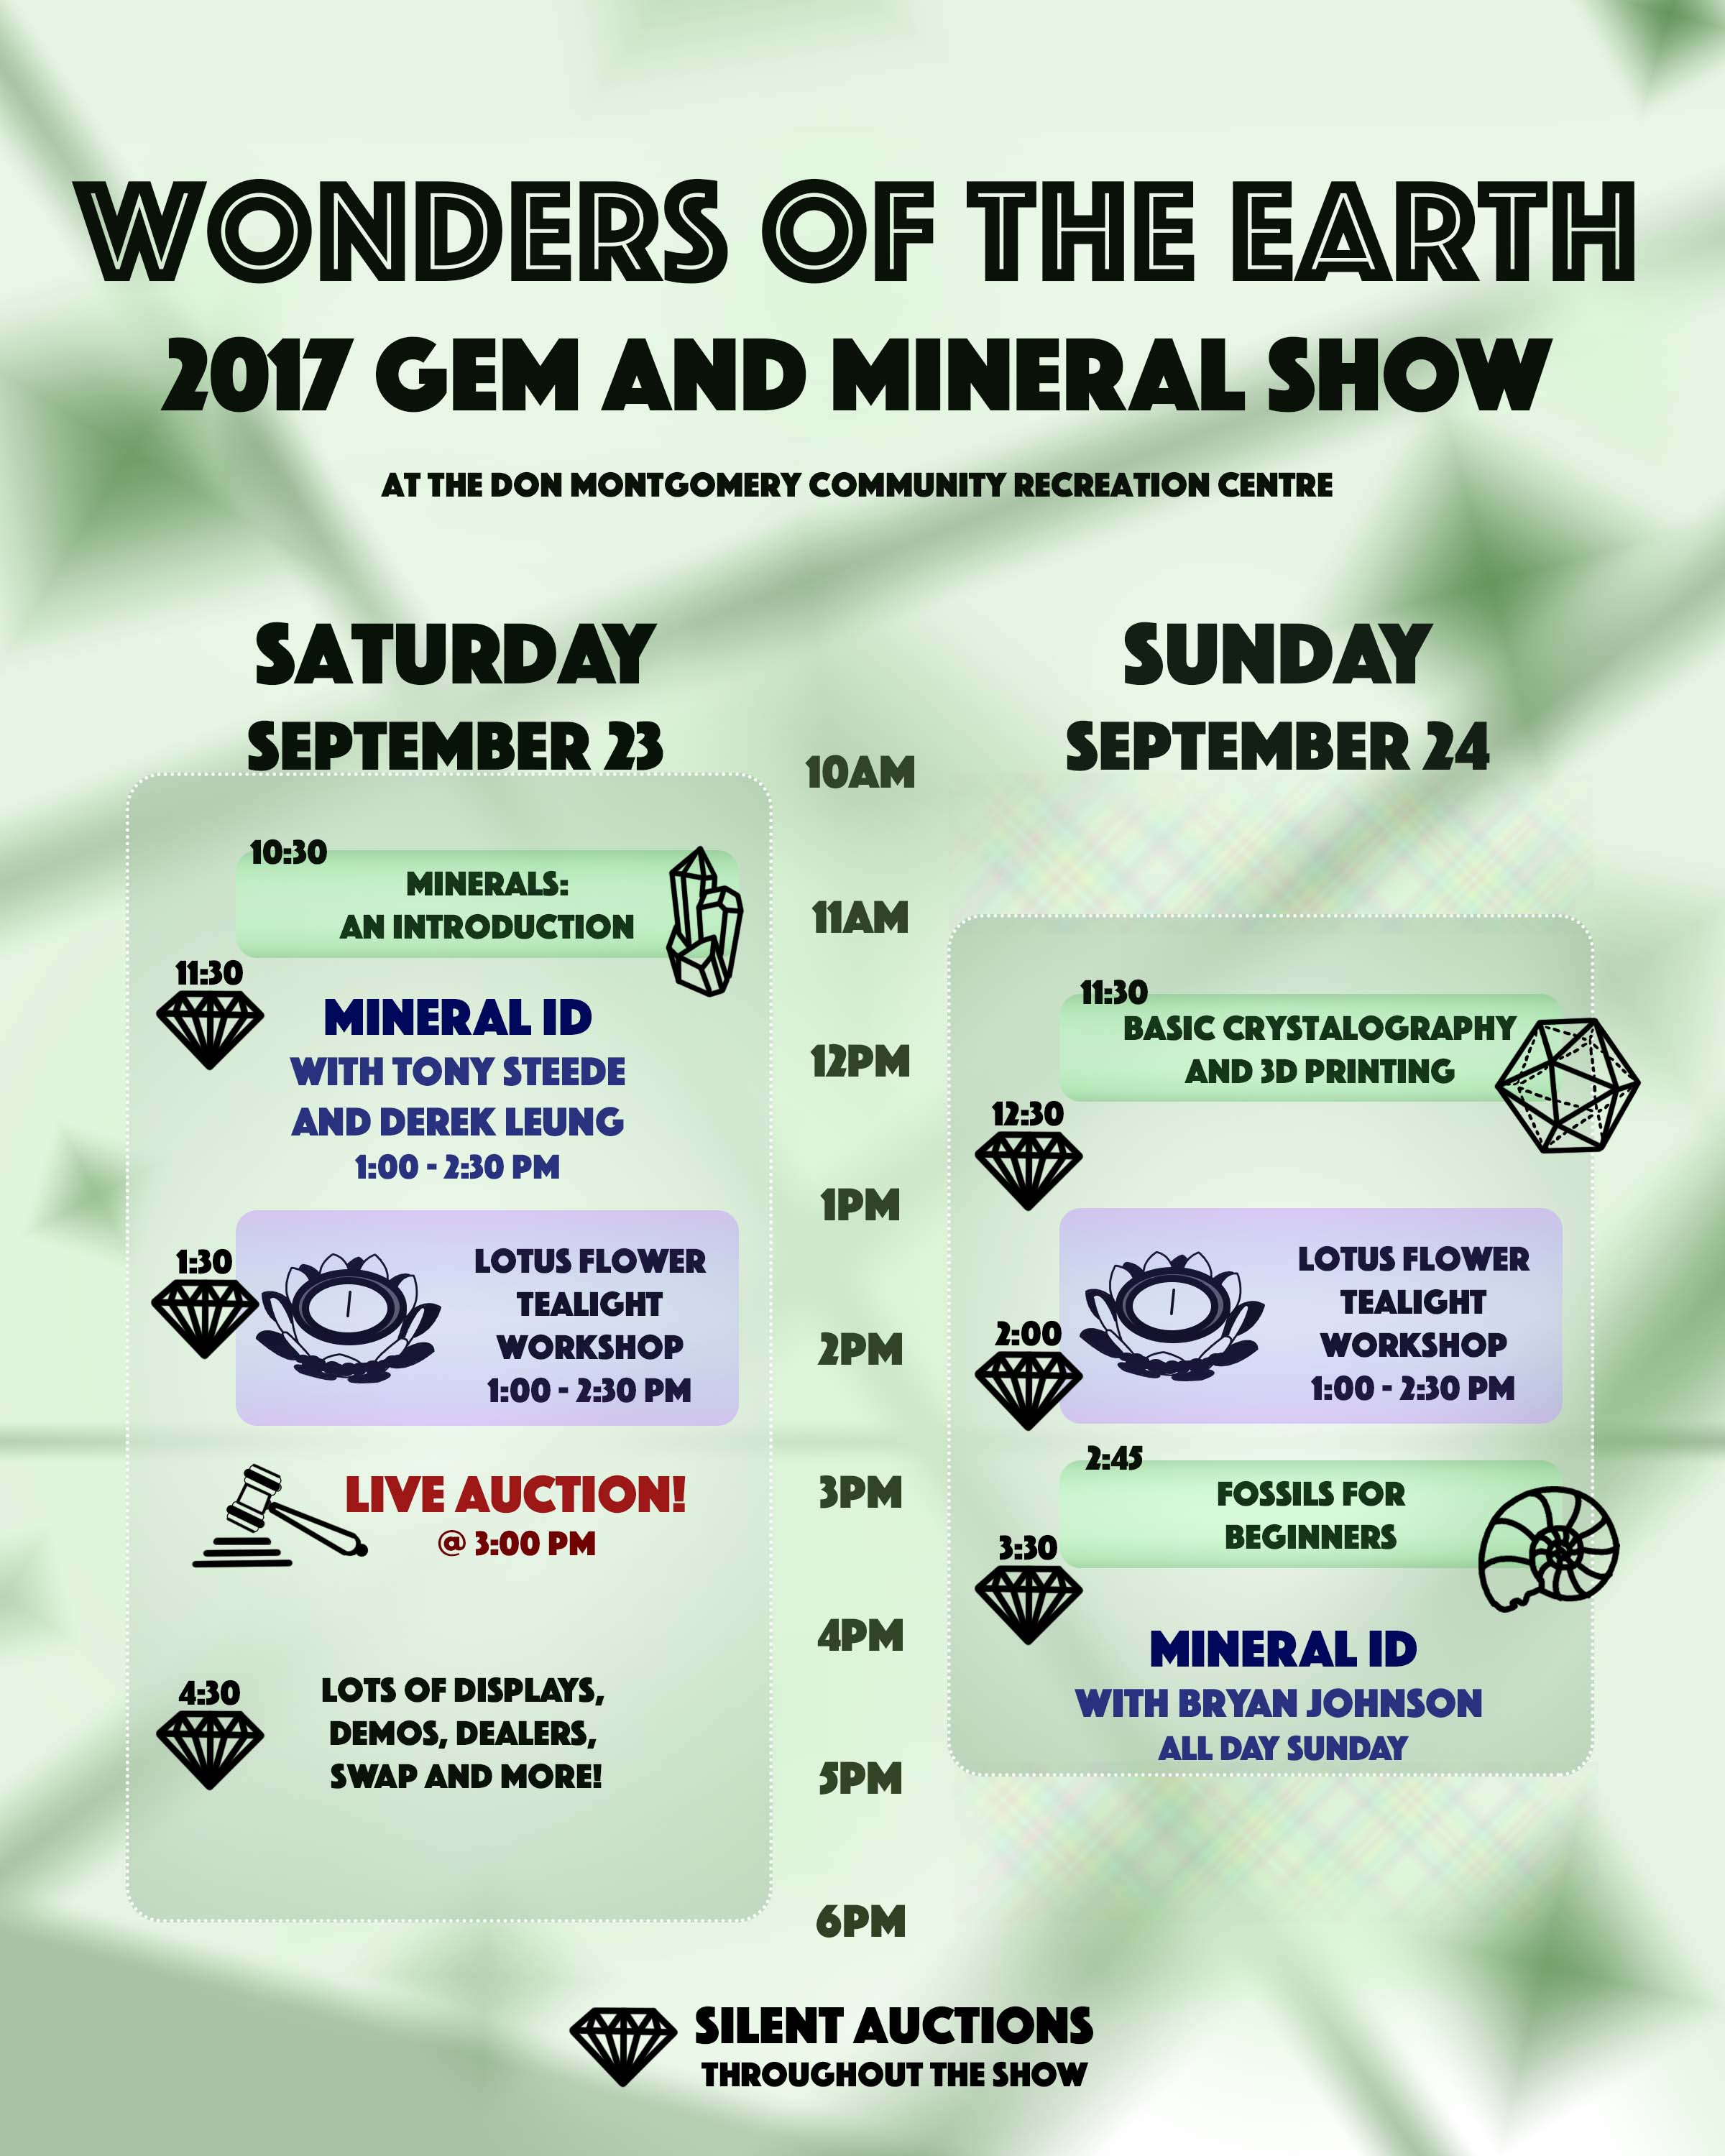 Wonders of the Earth Gem and Mineral Show Activity Schedule